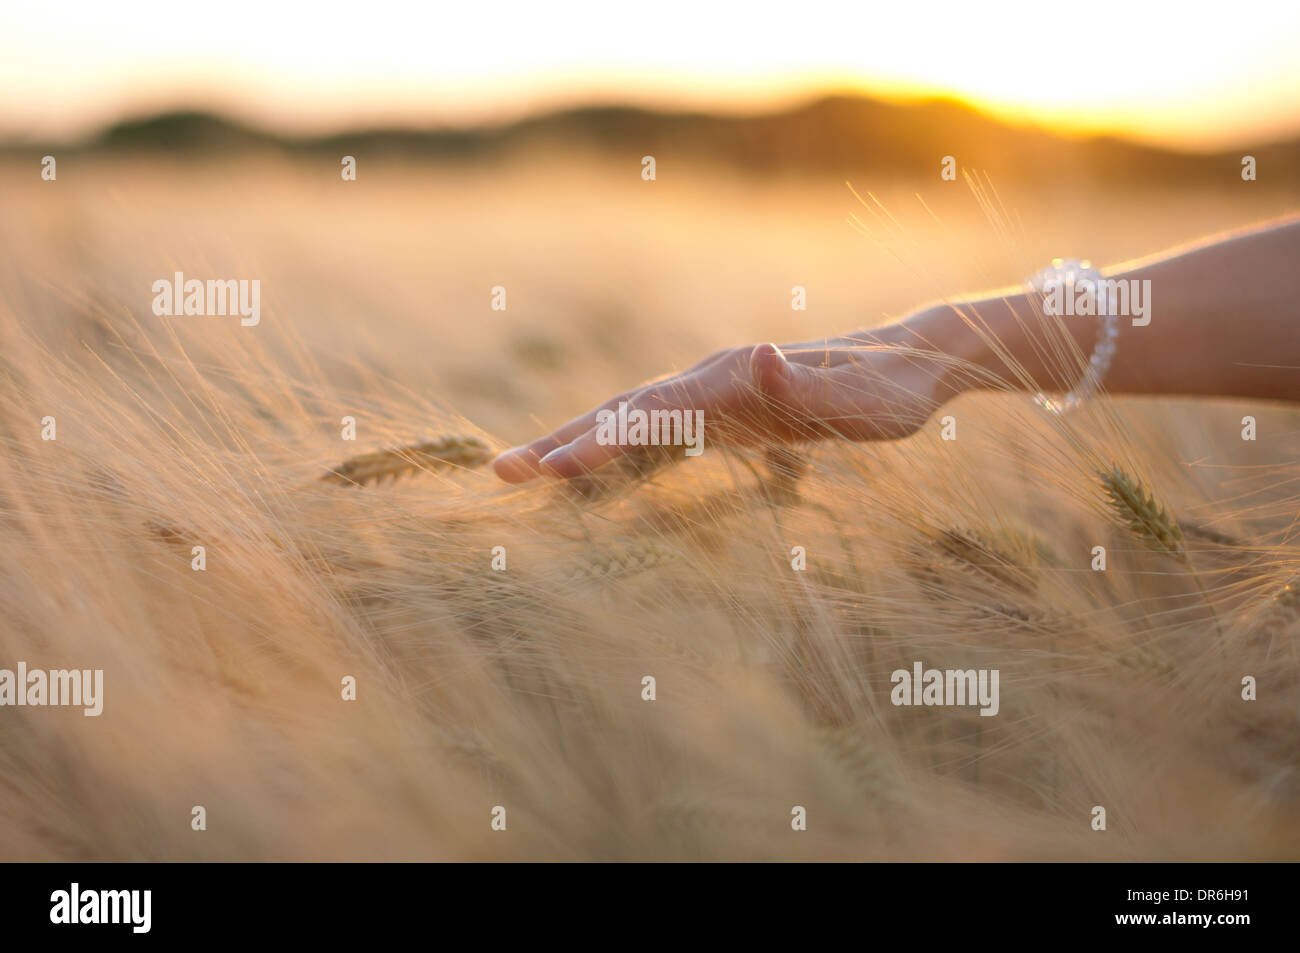 Hand of a woman in a grain field - Stock Image